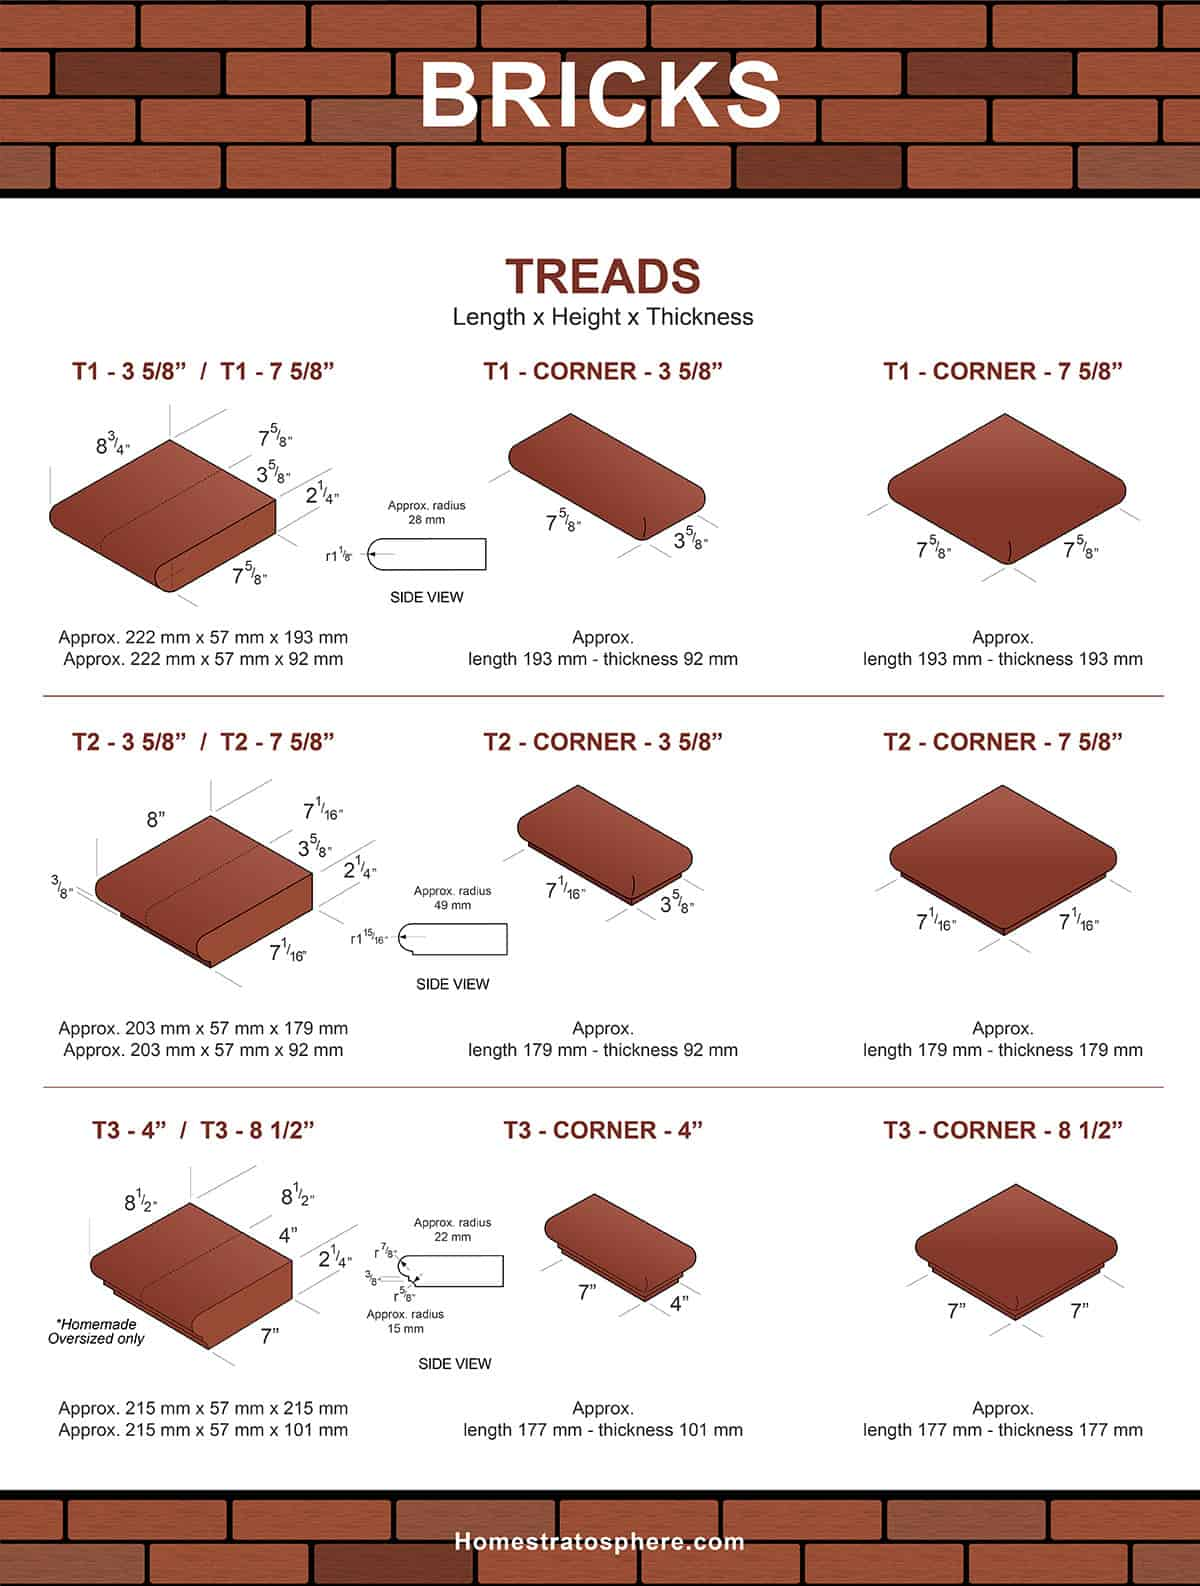 Tread bricks sizes and dimensions chart